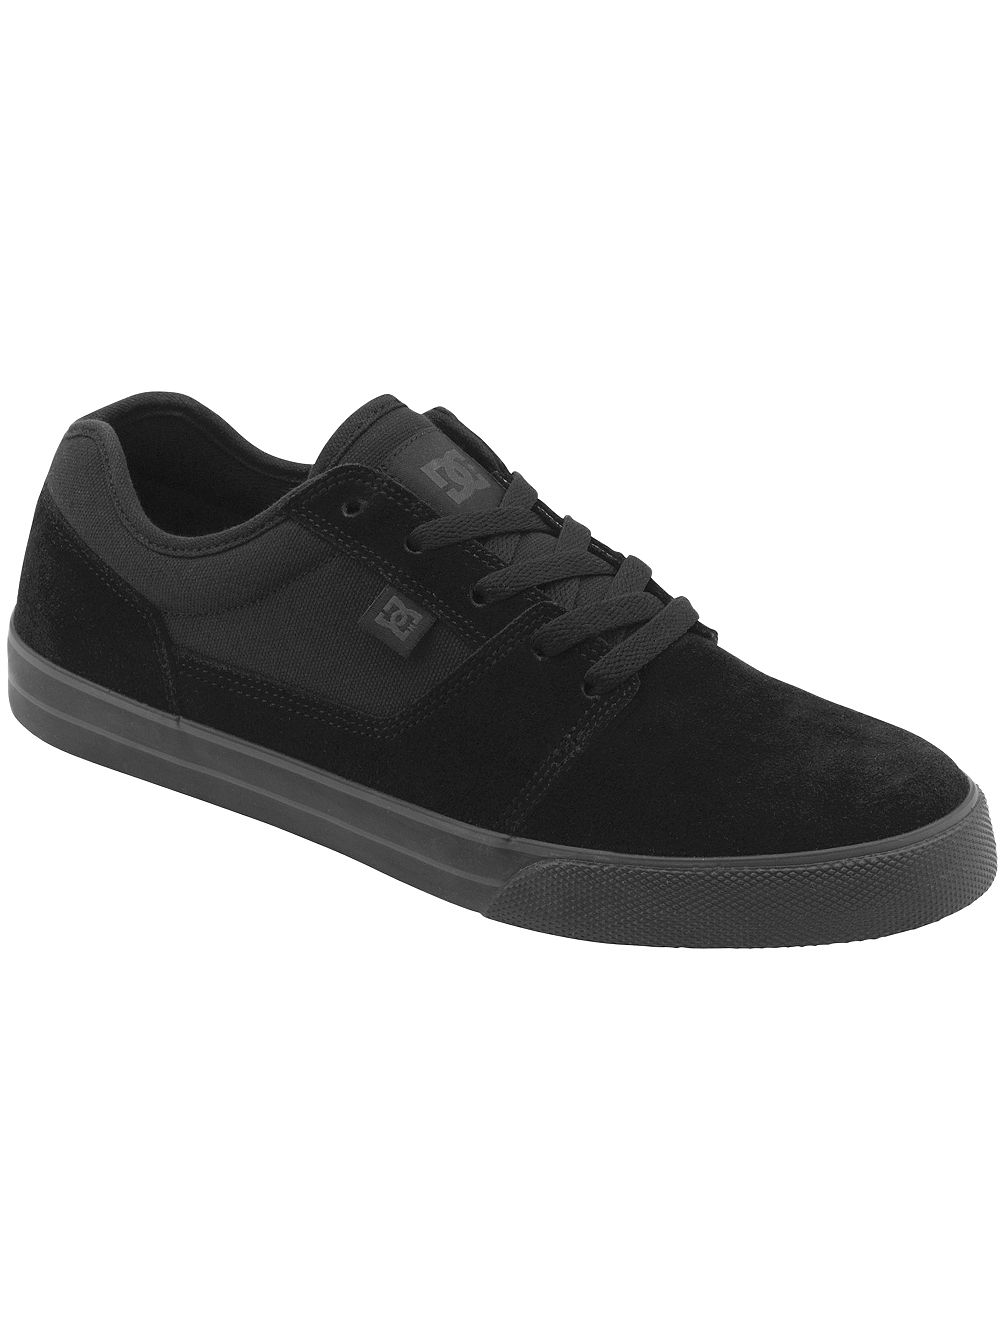 Tonik Skate Shoes